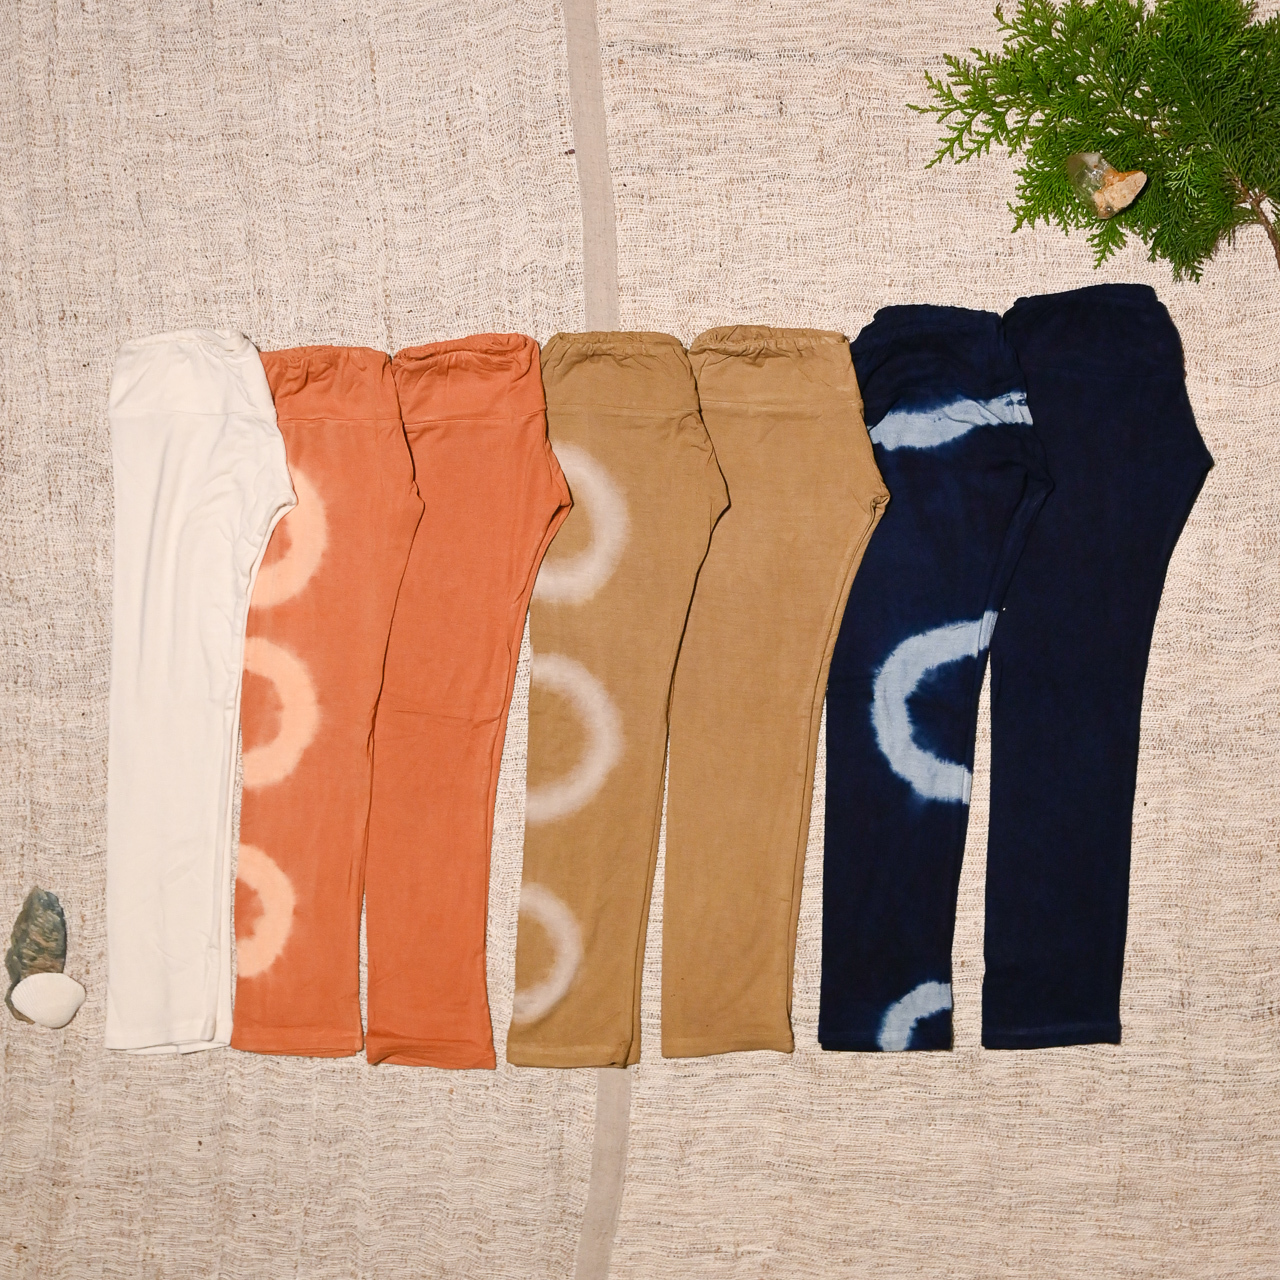 【先行販売価格】 Kids ∞Leggings∞ Bamboo